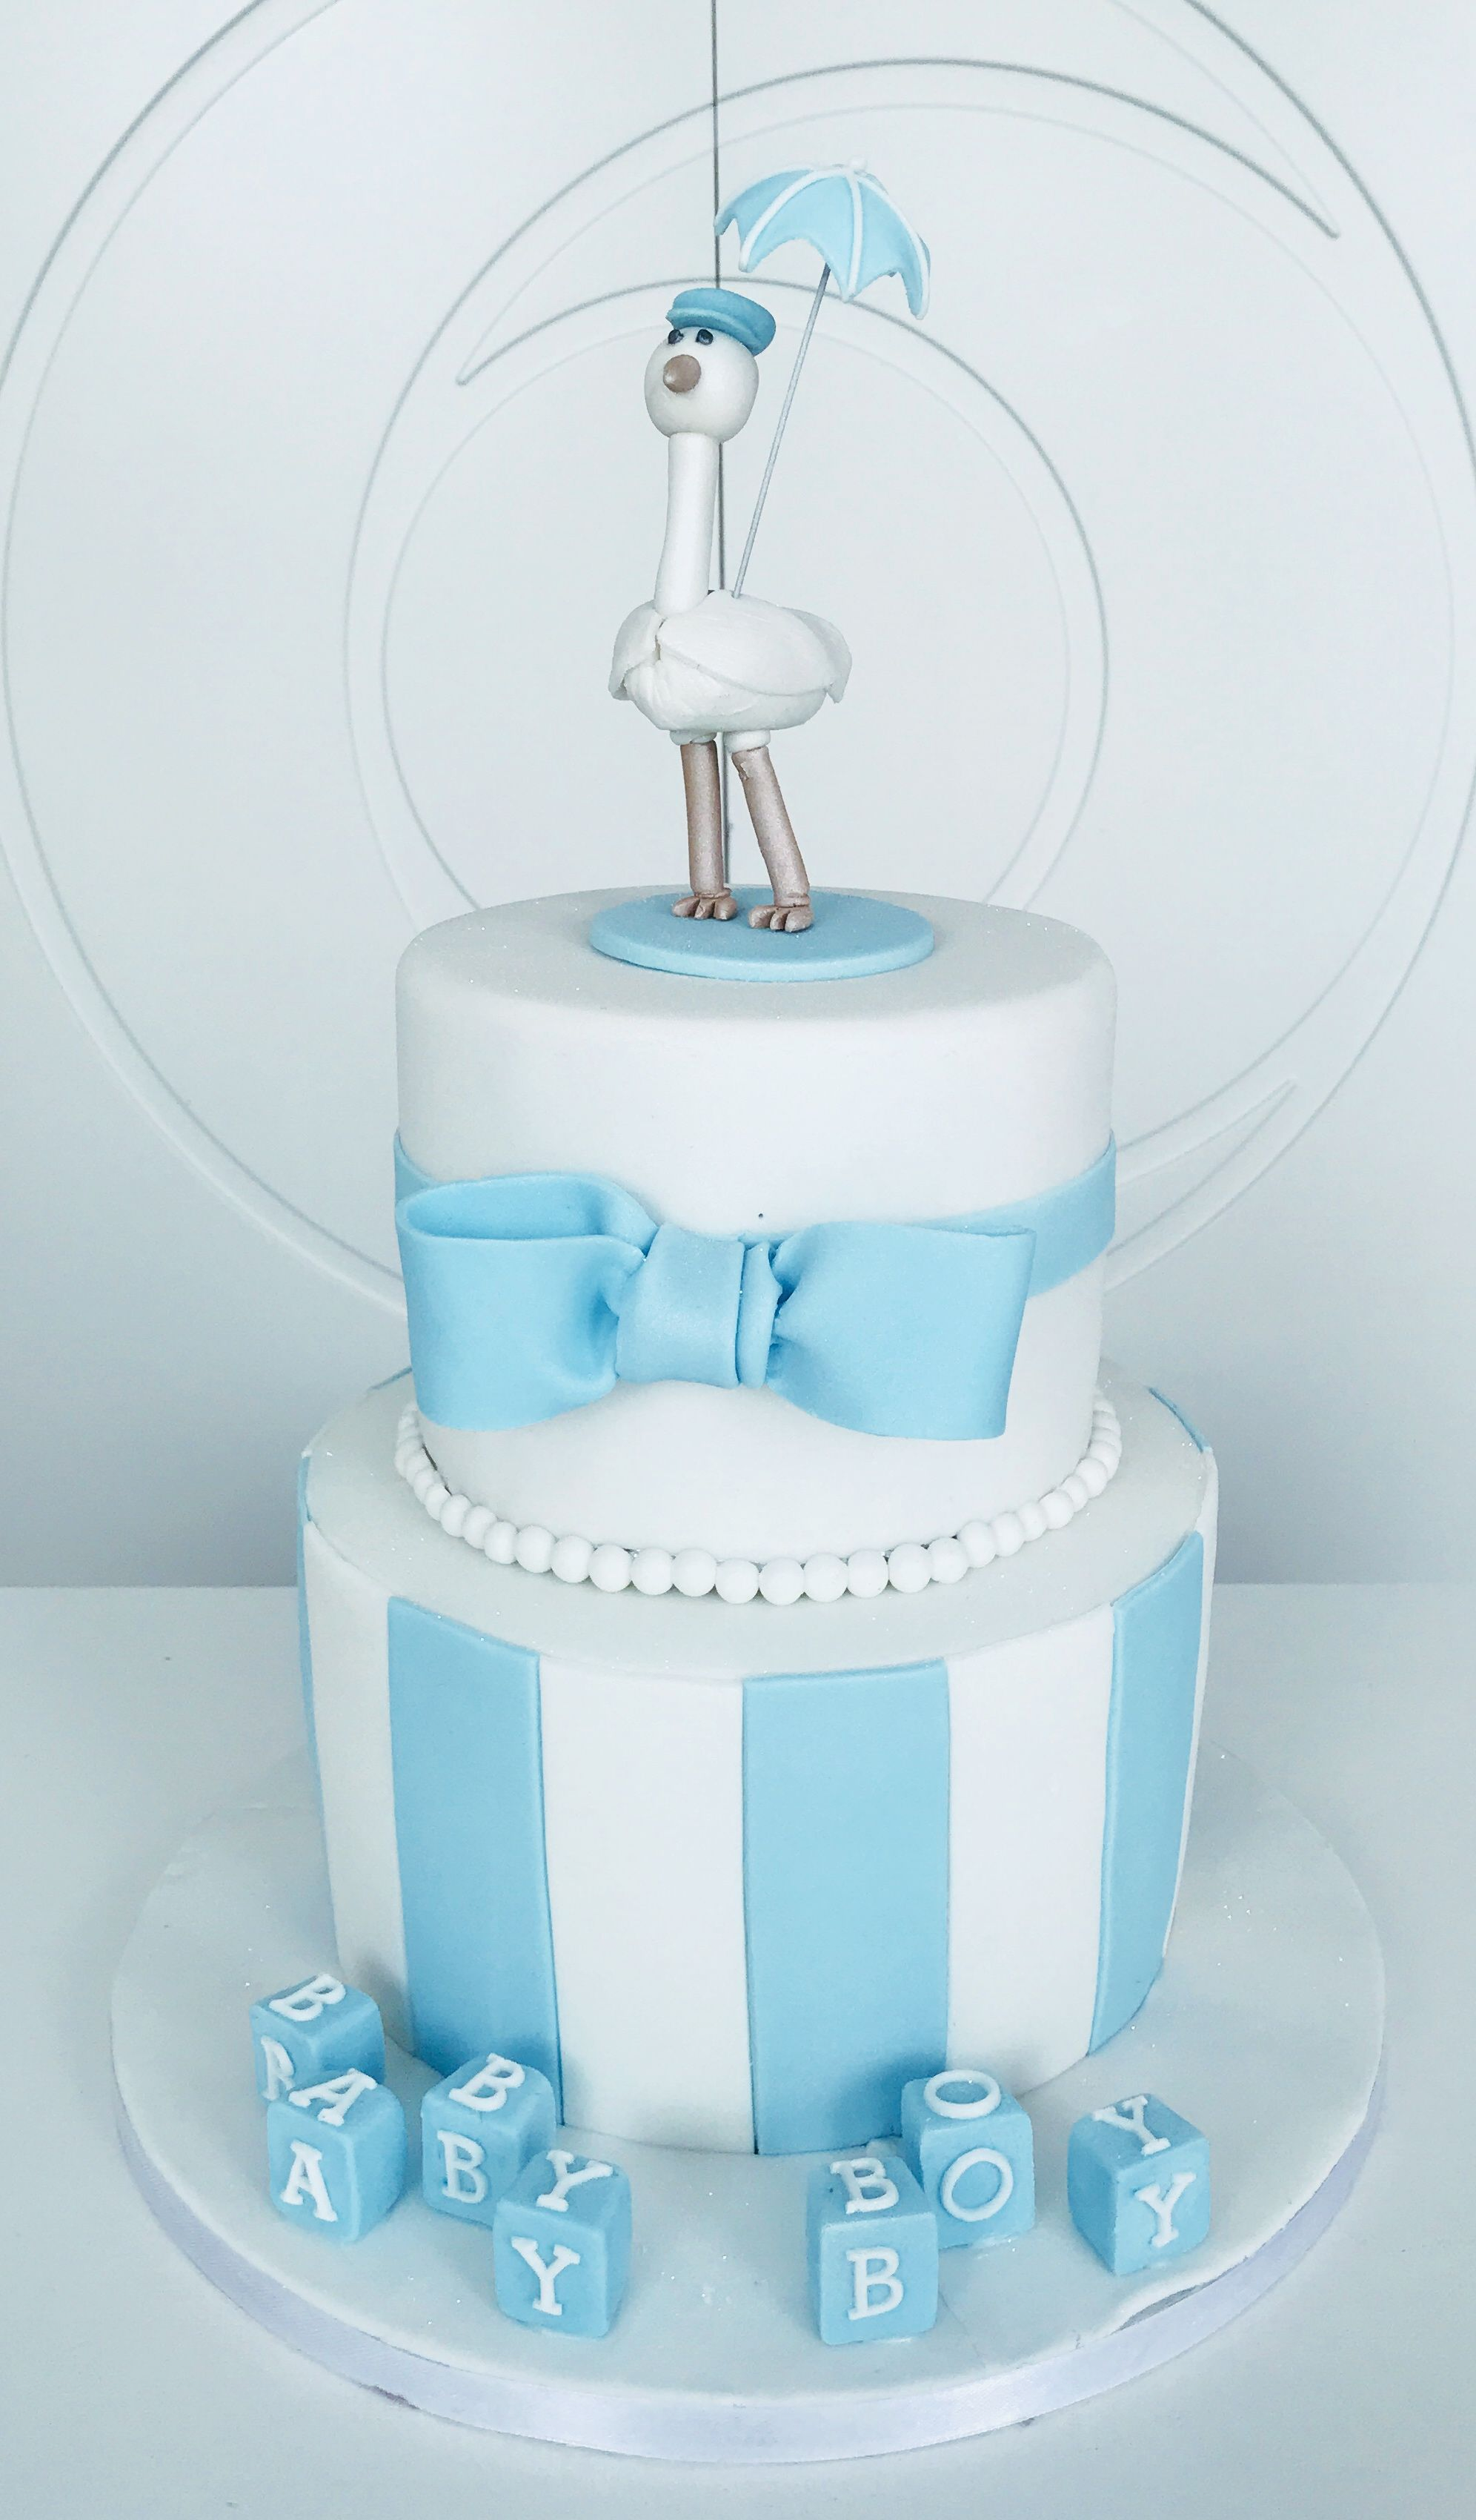 Baby Boy Baby Shower Cake Unique Baby Gifts Personalized Baby Gifts New Baby Gifts